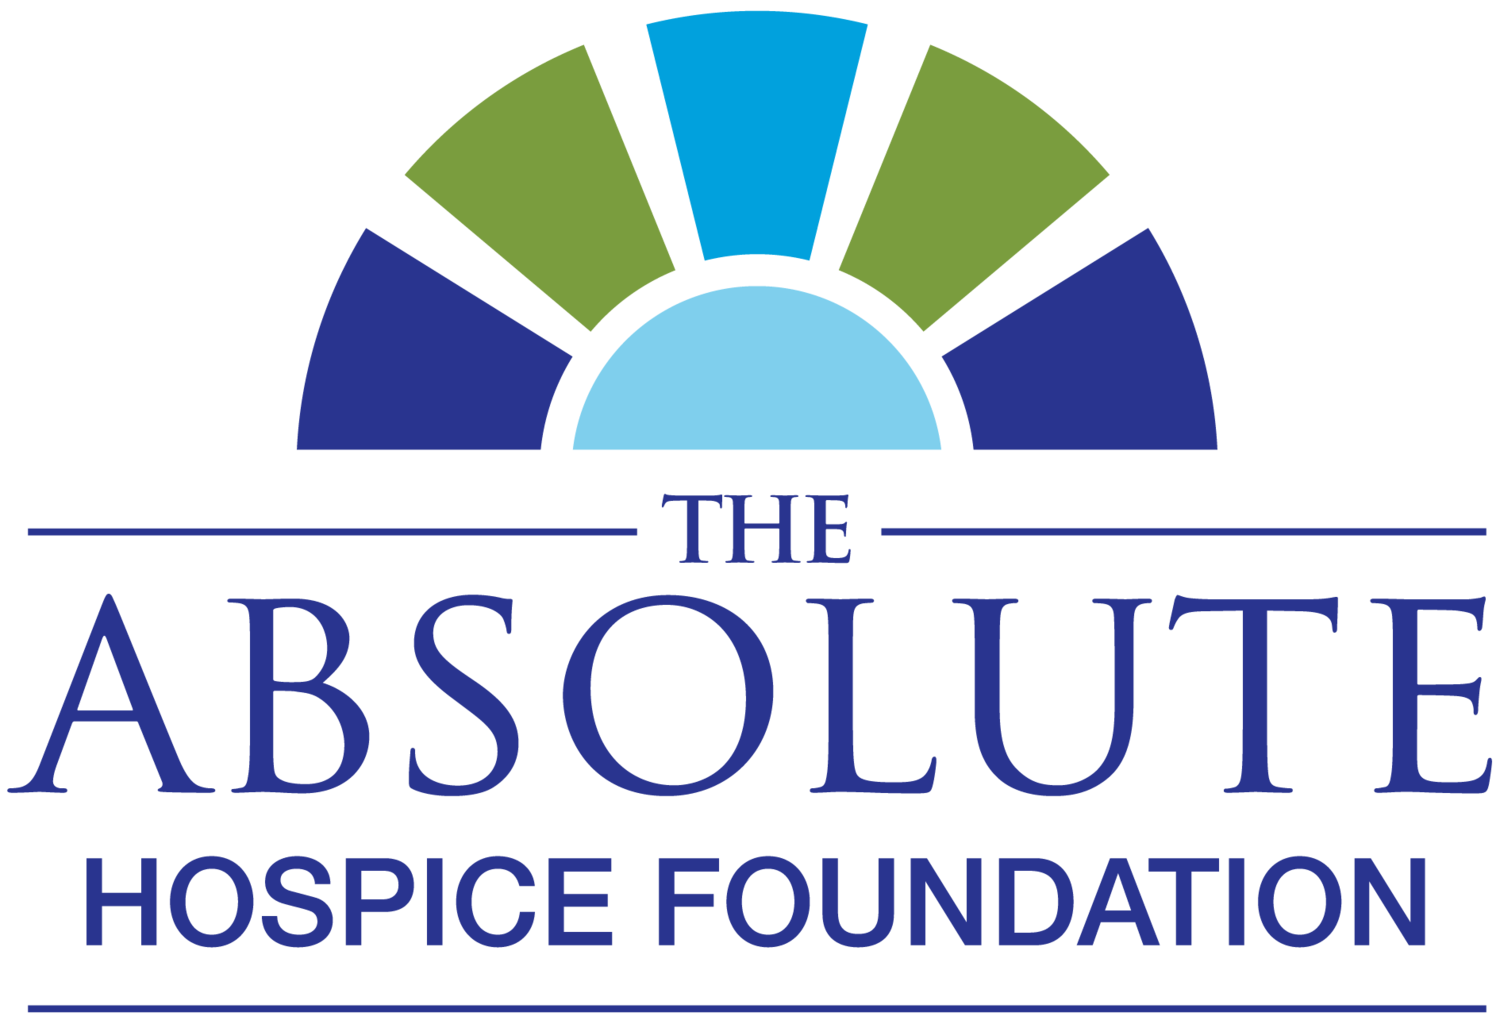 The Absolute Hospice Foundation